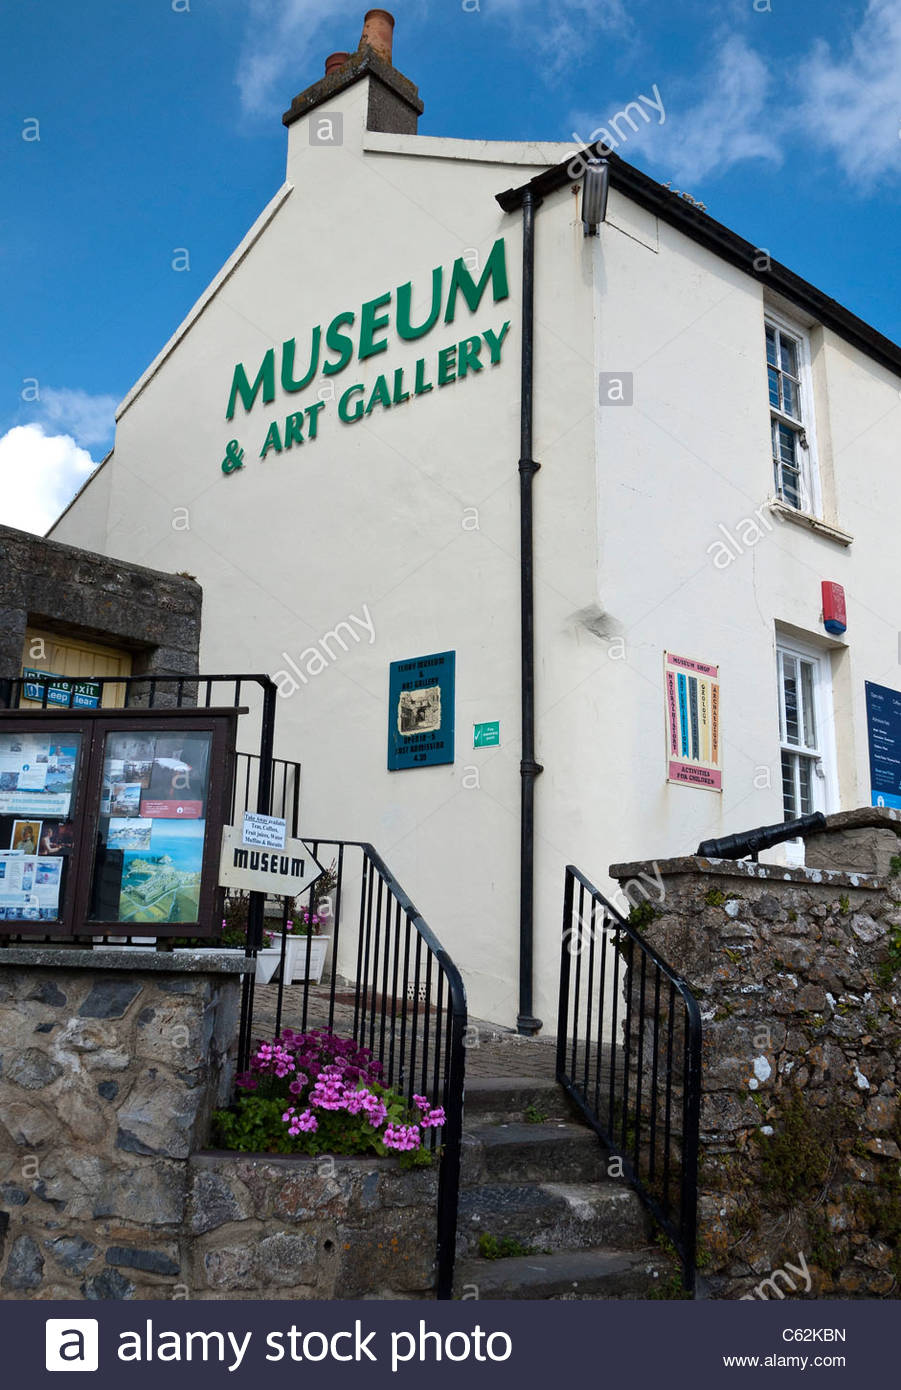 Tenby Museum and Art Gallery South Wales, Tenby Museum & Art Gallery Stock Photo, Royalty Free Image ...